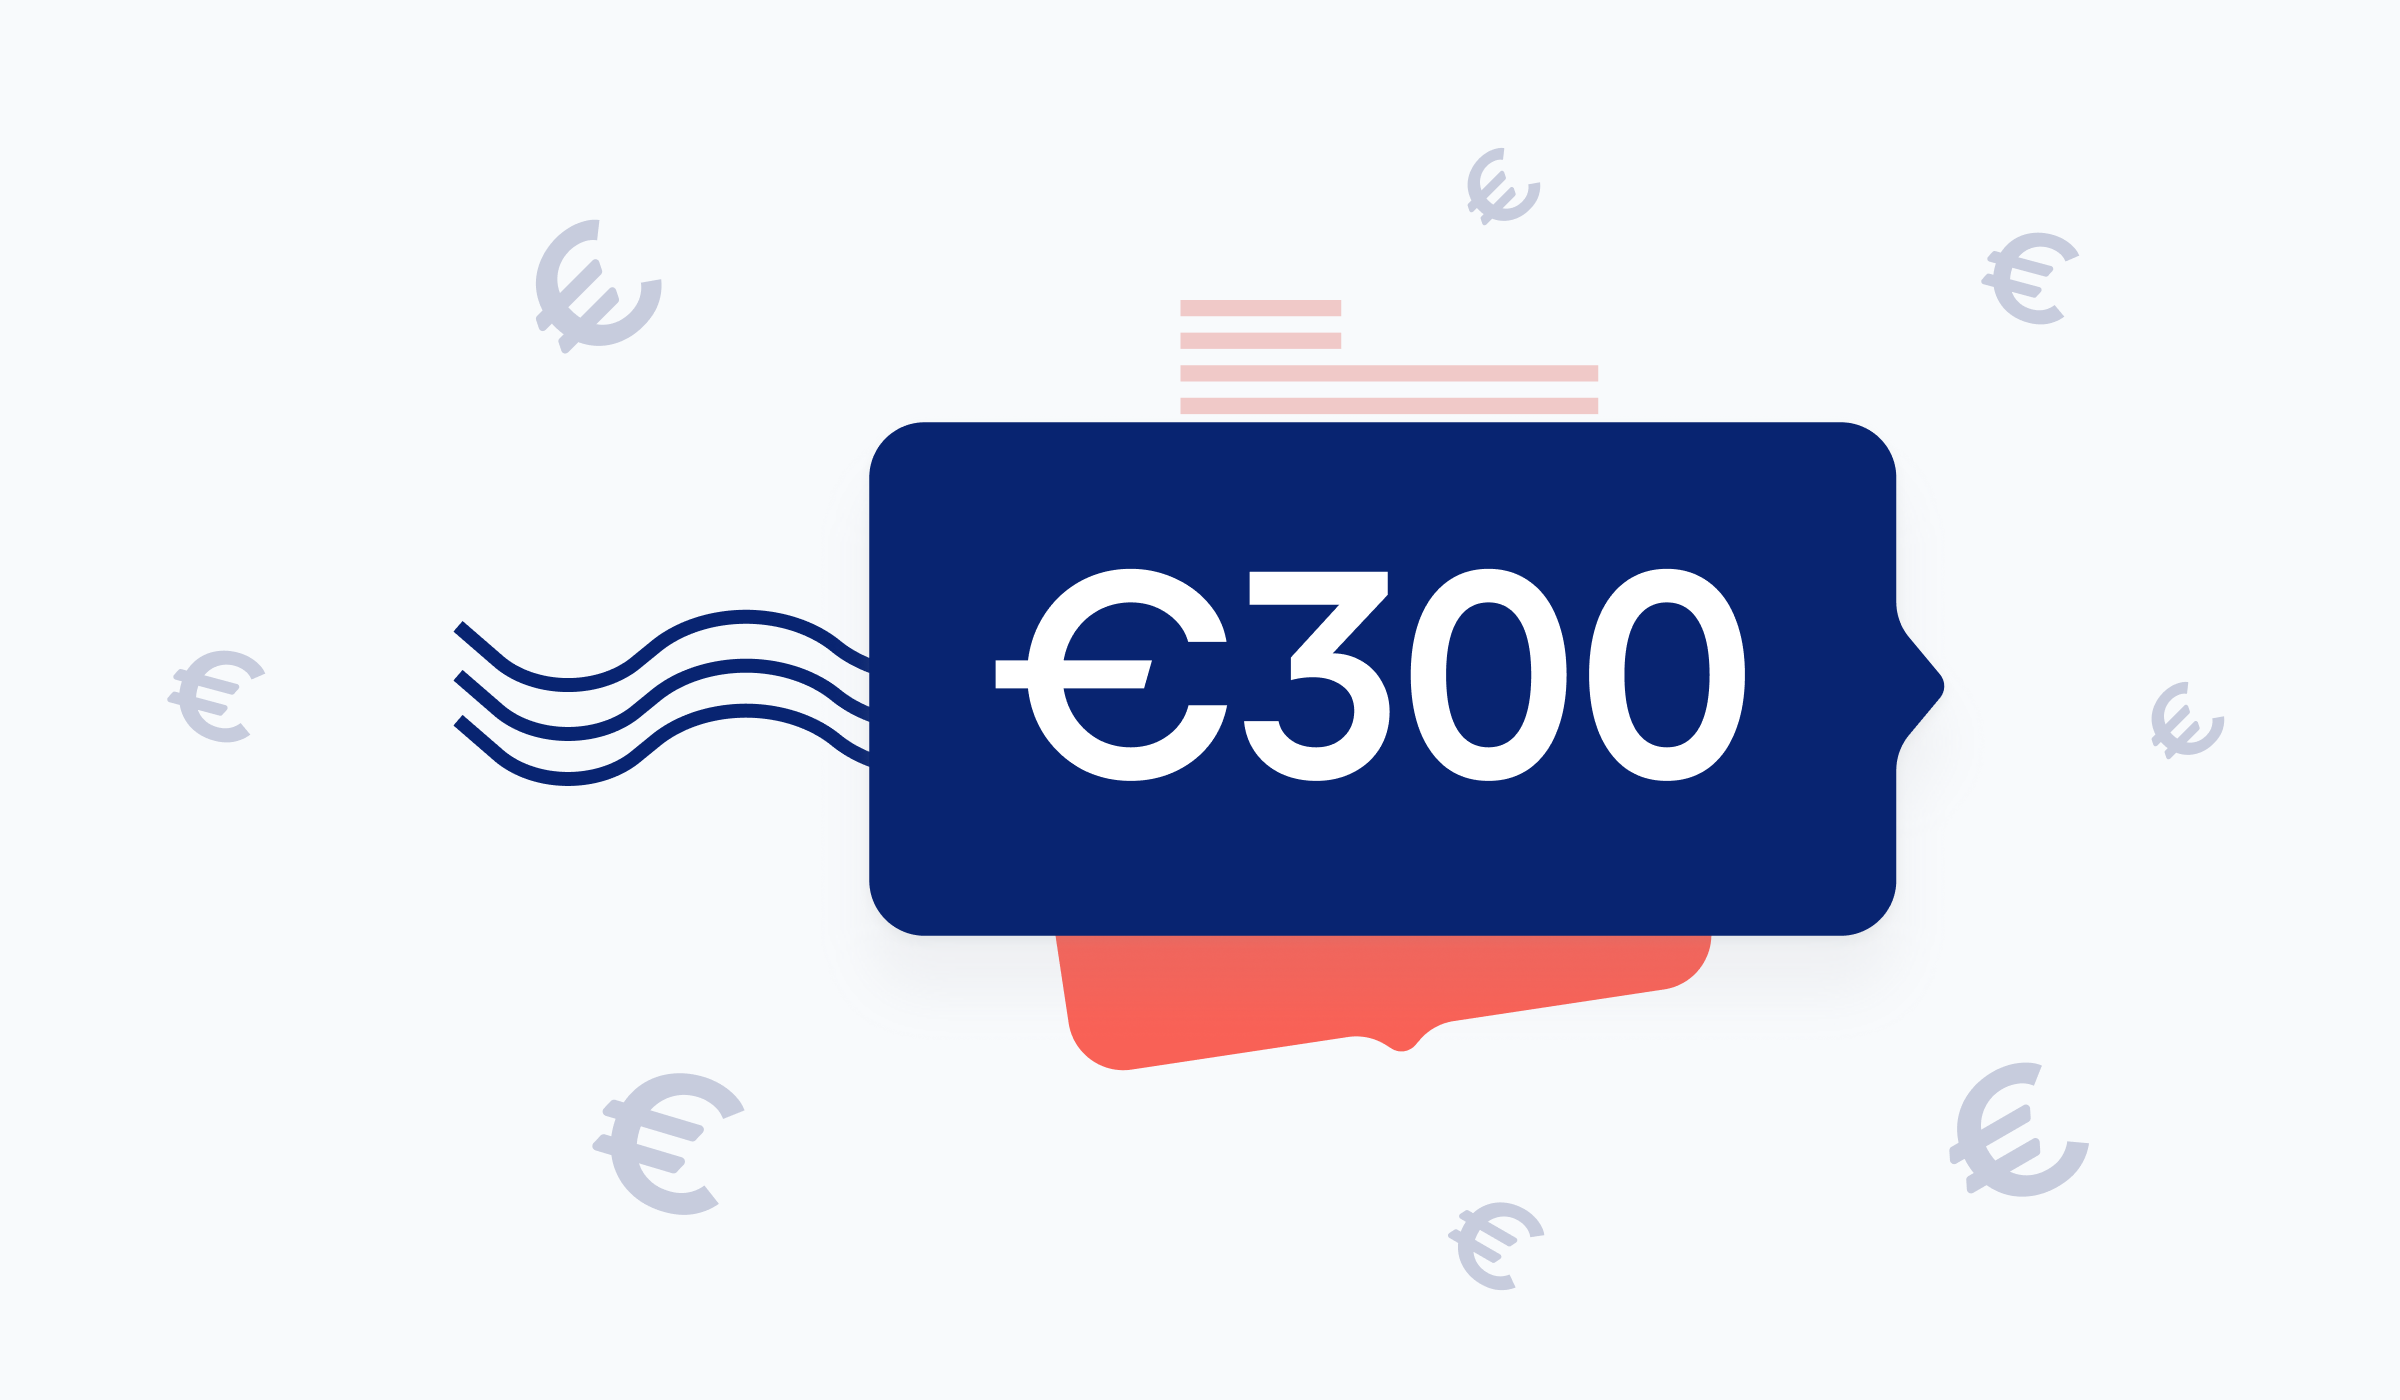 Invite 2 friends and earn €300